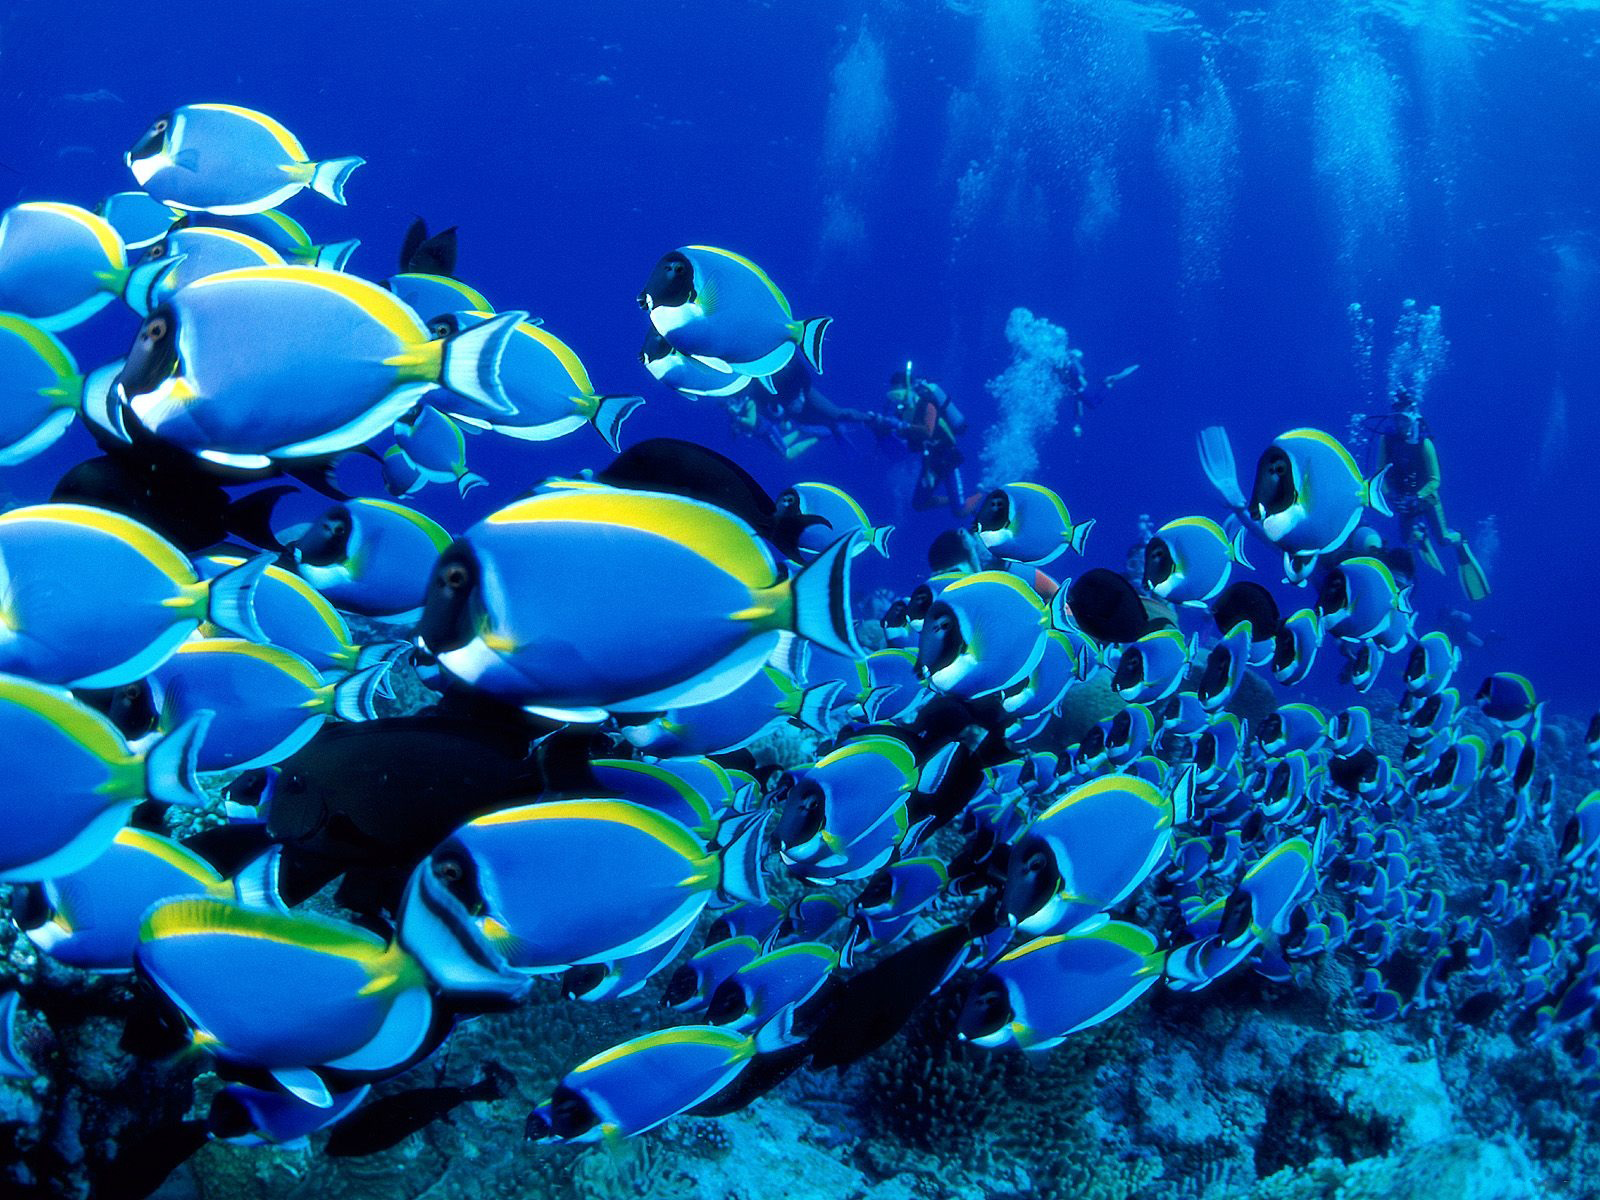 Best wallpapers underwater wallpapers hd for Wallpaper fish in water